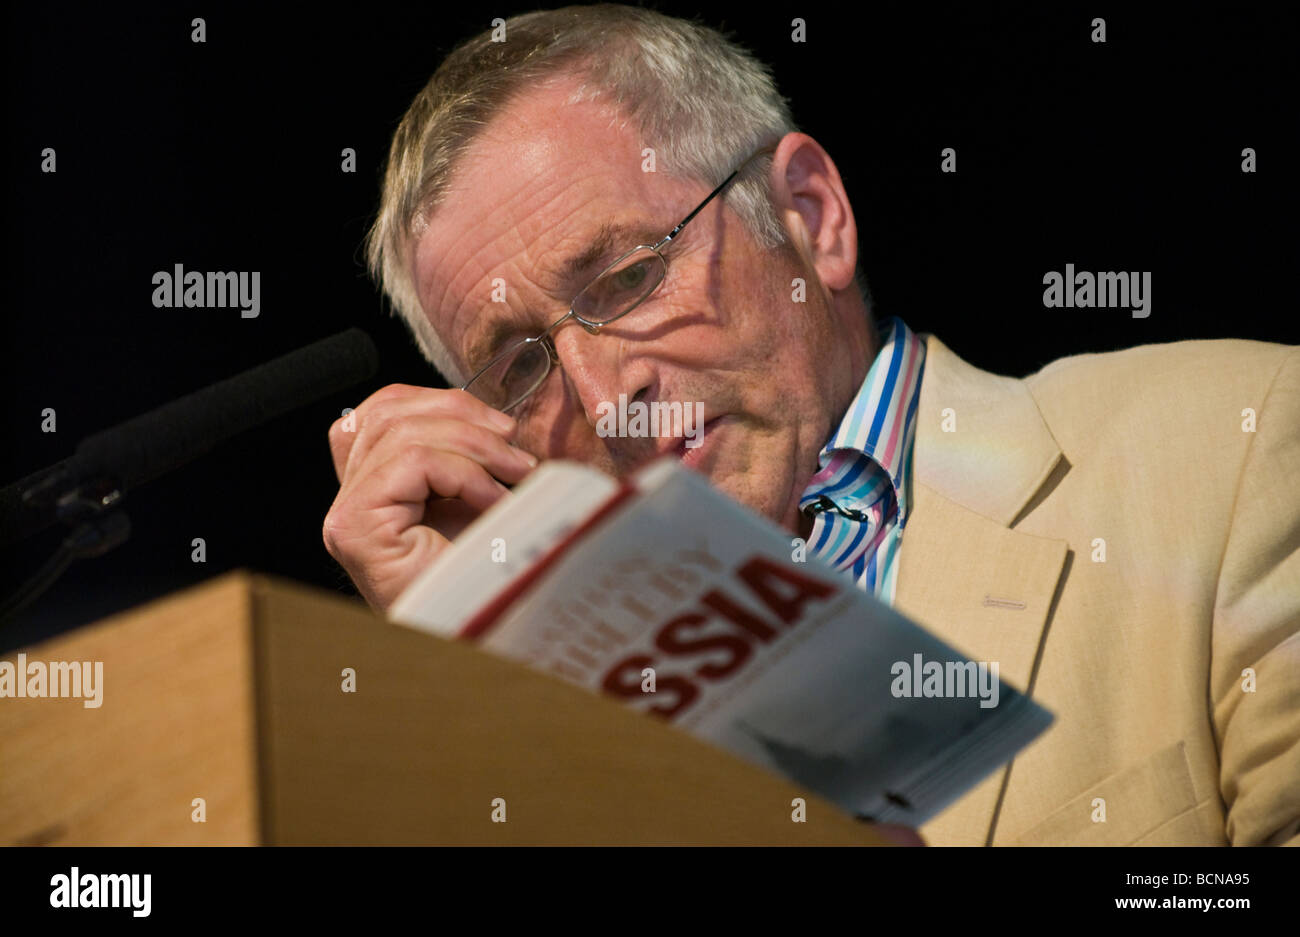 Jonathan Dimbleby broadcaster, tv presenter and author pictured at Hay Festival 2009 - Stock Image